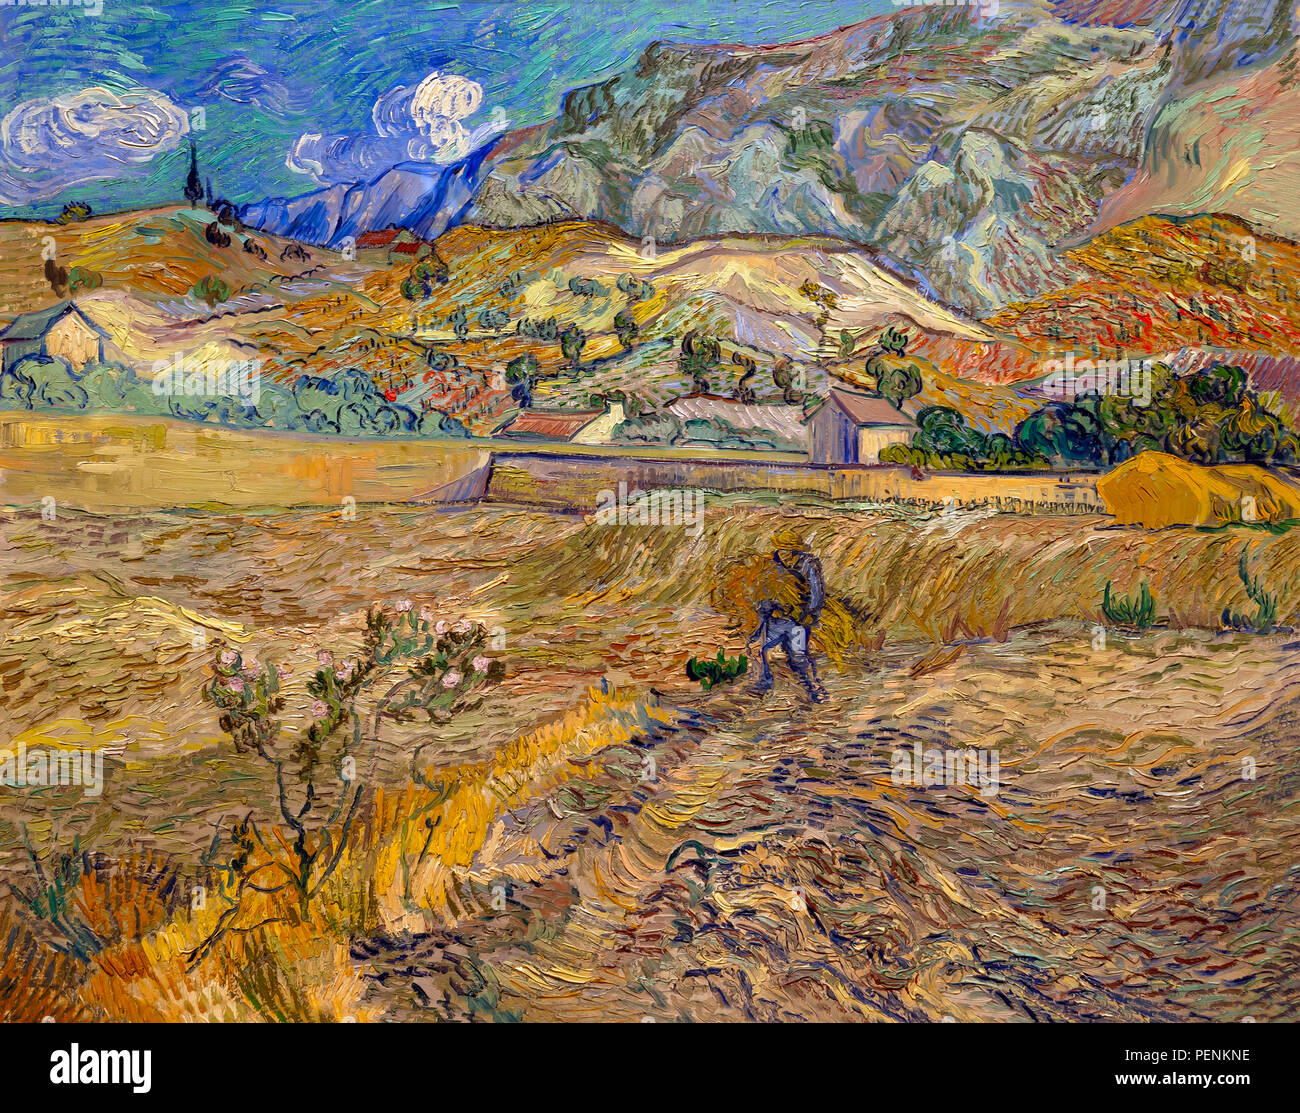 Landscape at Saint-Remy, Enclosed Field with Peasant, Vincent van Gogh, 1889, Indianapolis Museum of Art, Indianapolis, Indiana, USA, North America - Stock Image